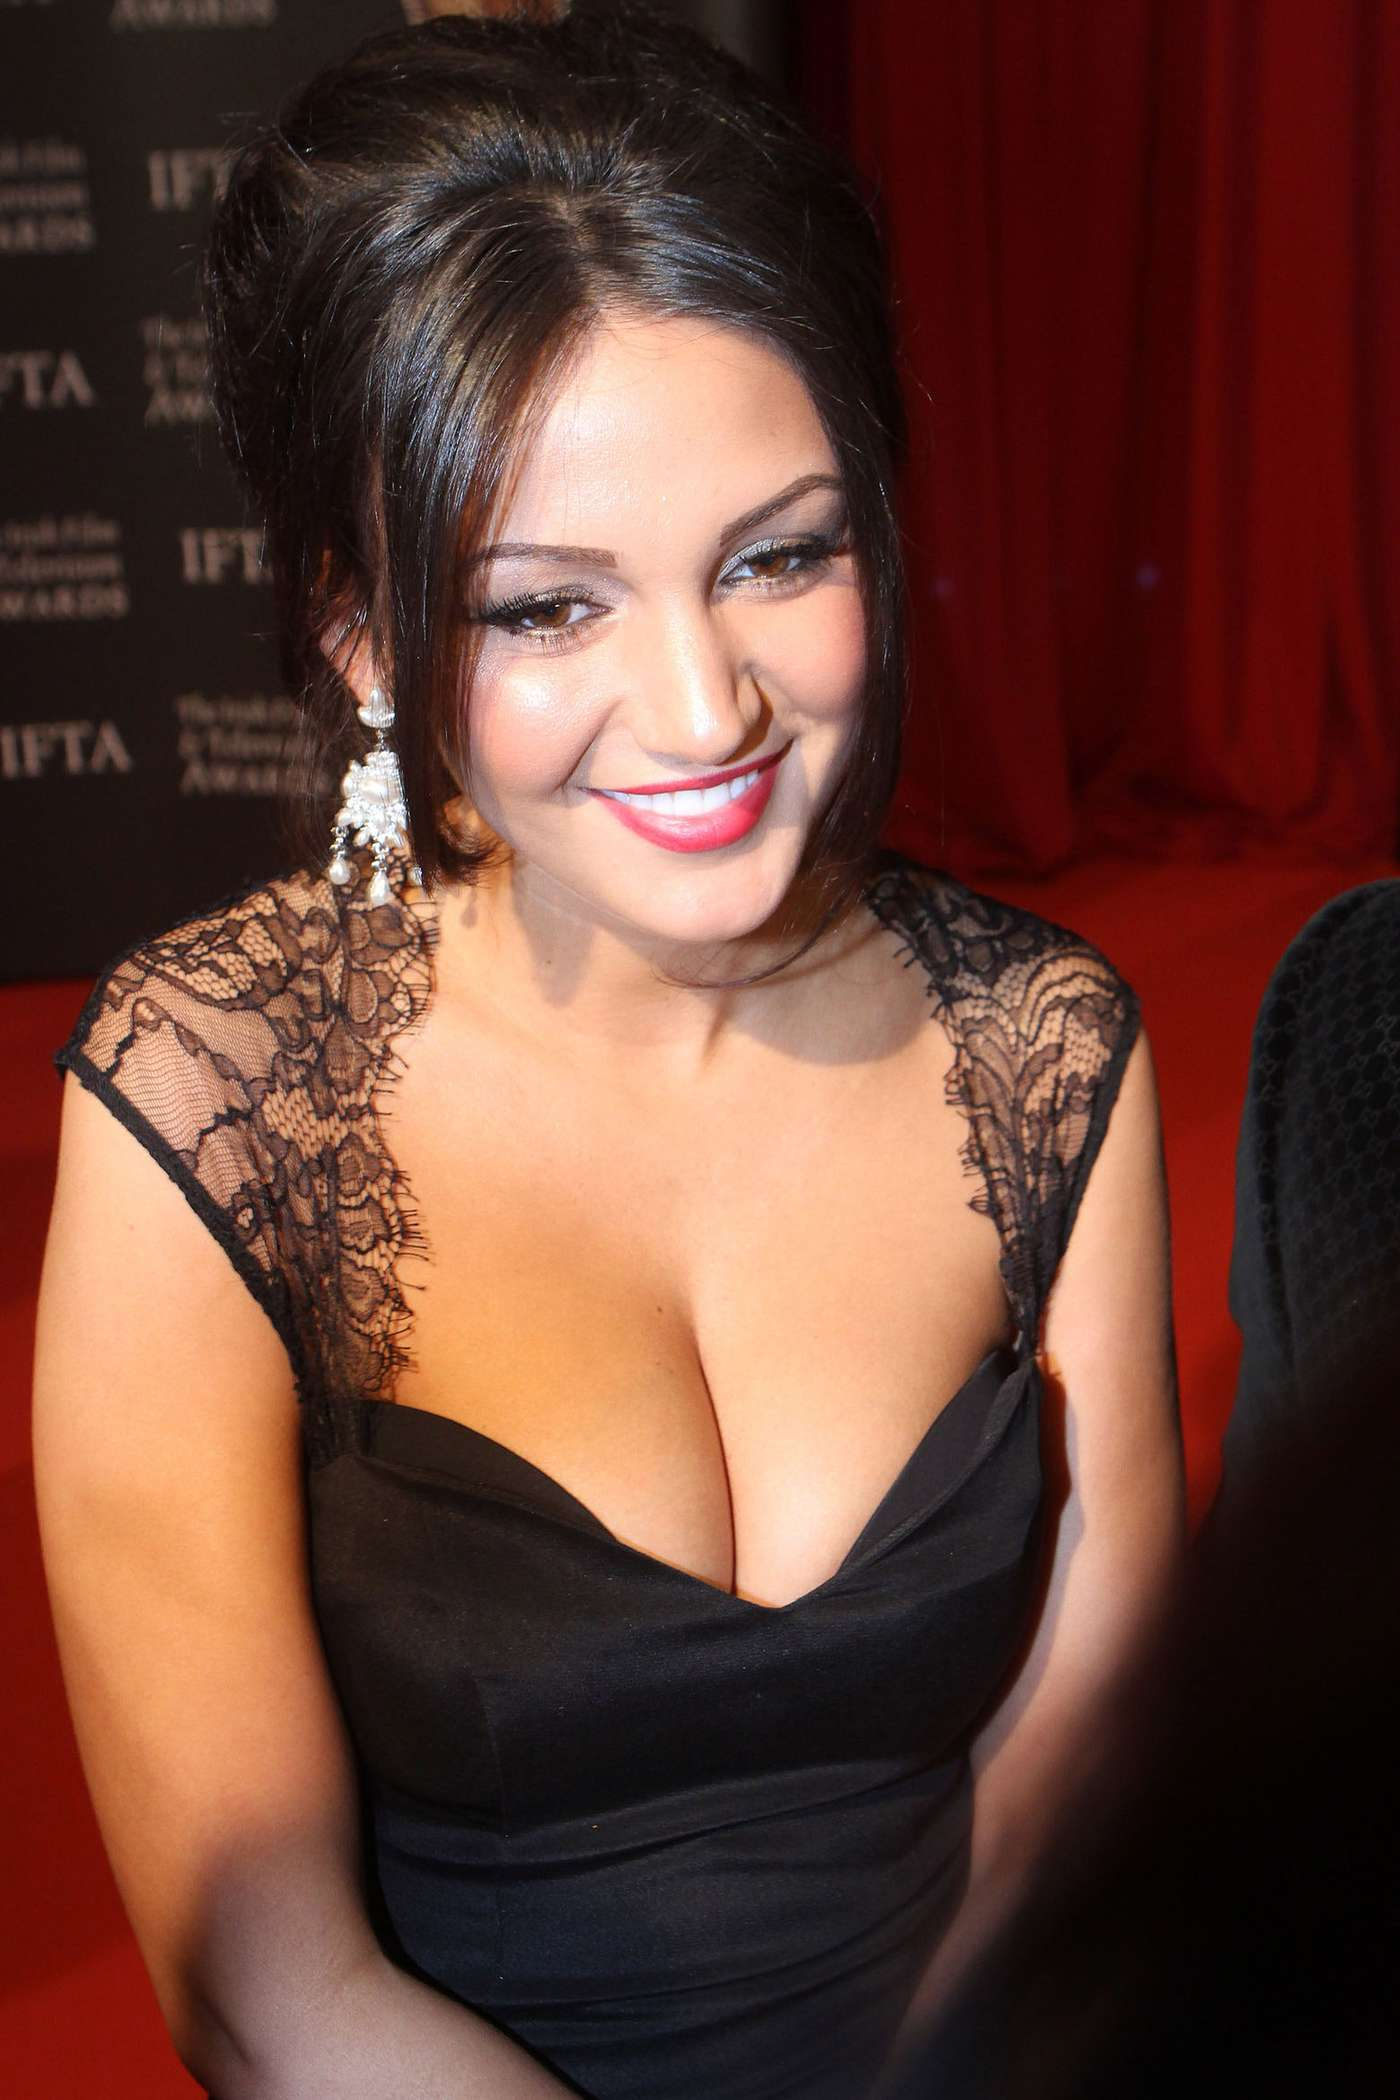 michelle-keegan-hot-wallpapers